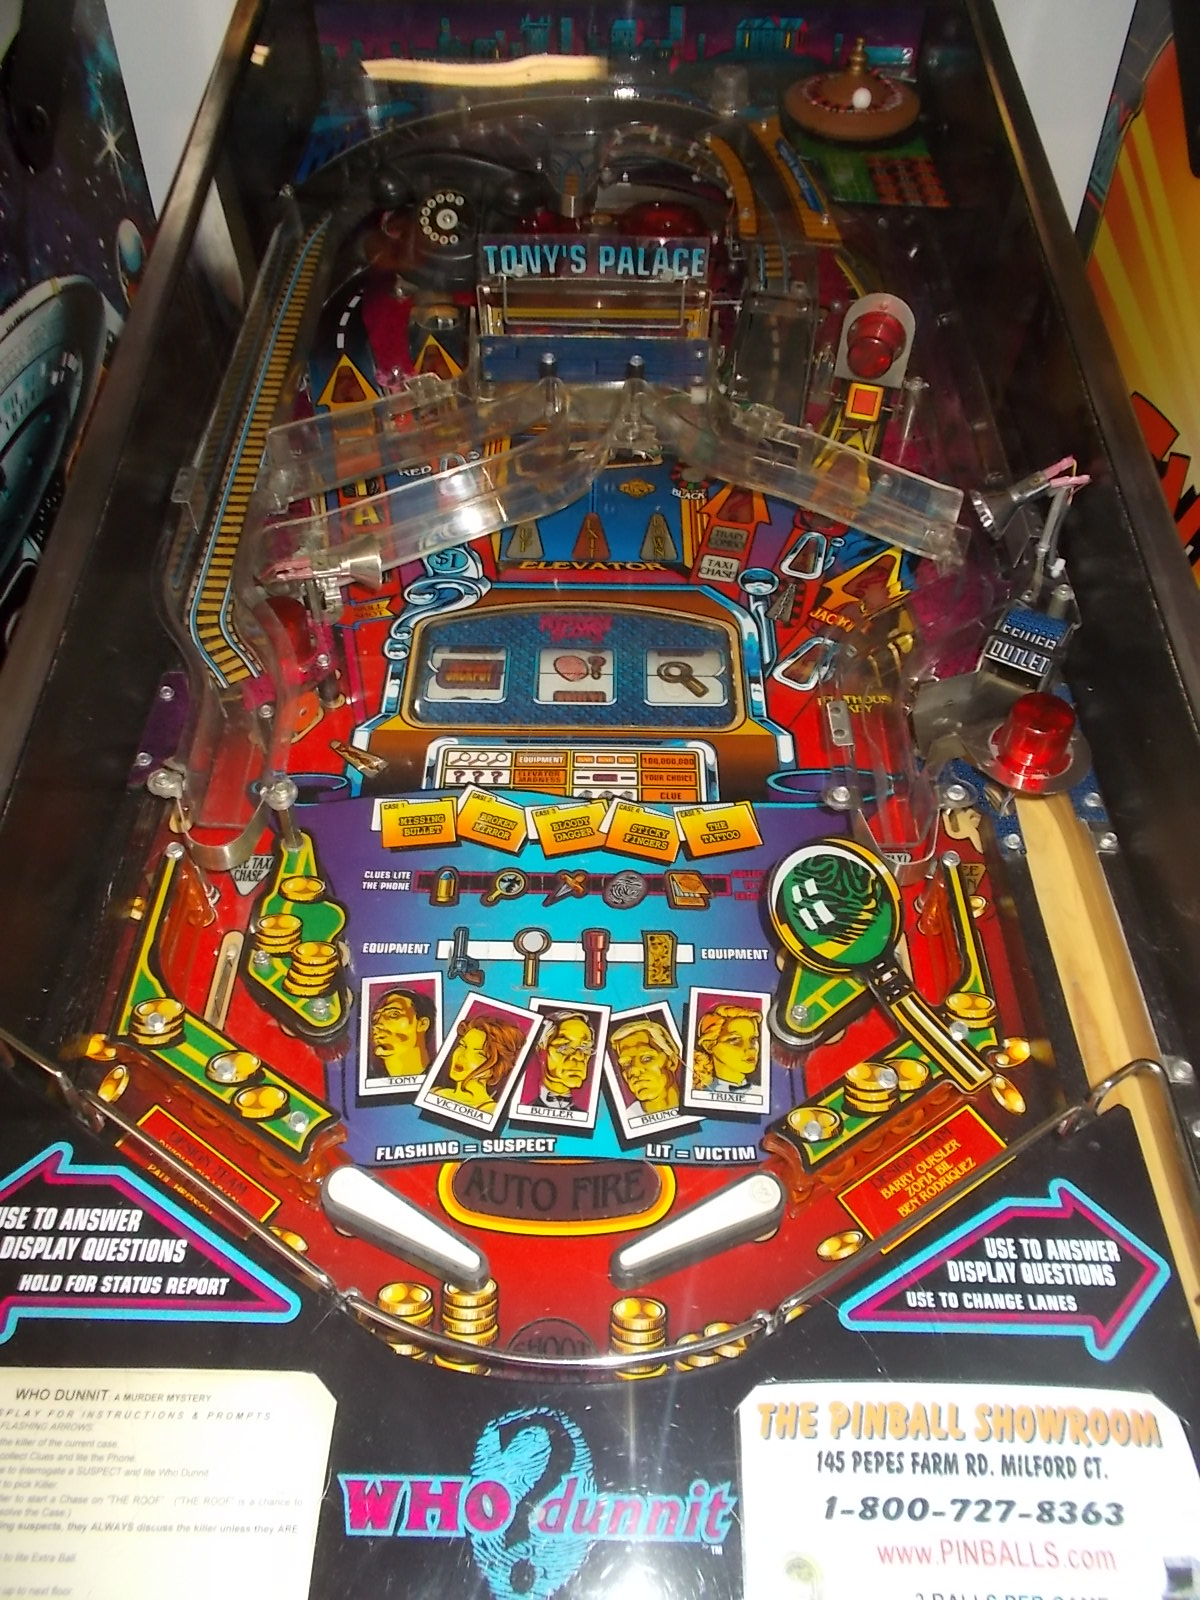 WHO DUNNIT Pinball Machine Game by BALLY MURDER MYSTERY CASINO